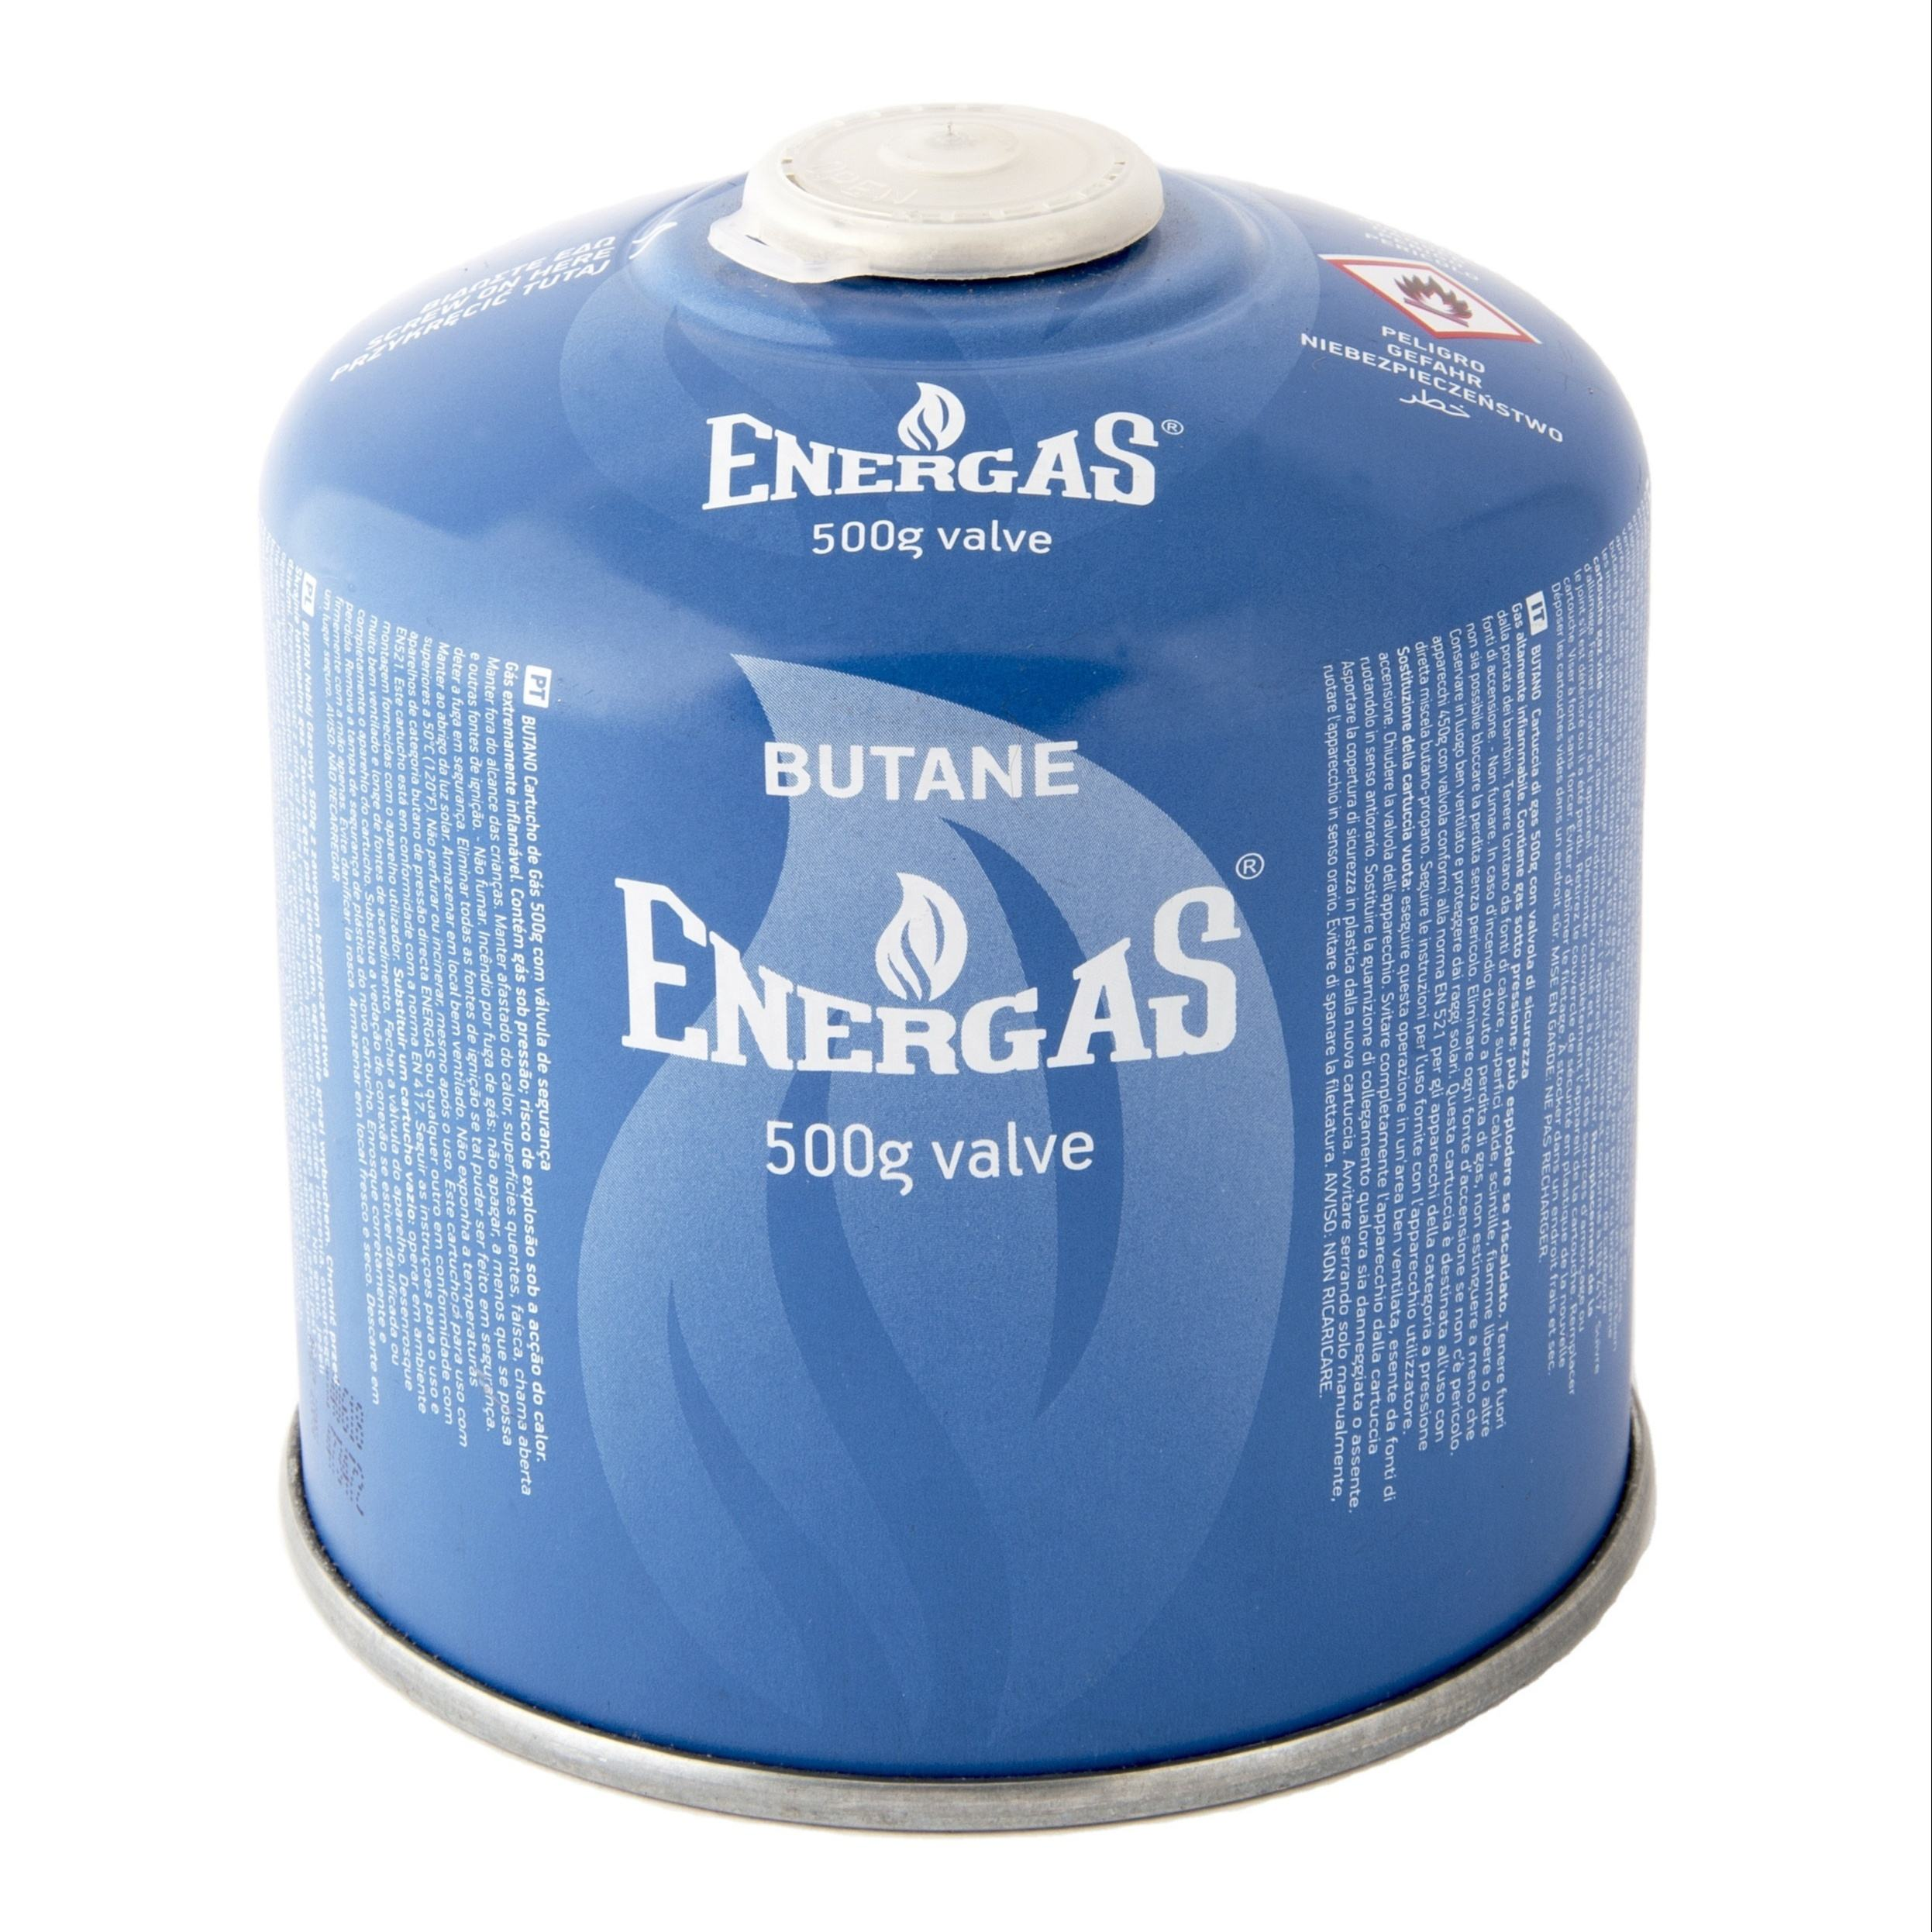 Tragbare 500g Butan Gas <span class=keywords><strong>Kanister</strong></span> Mit Gewinde Ventil Schraube Fit